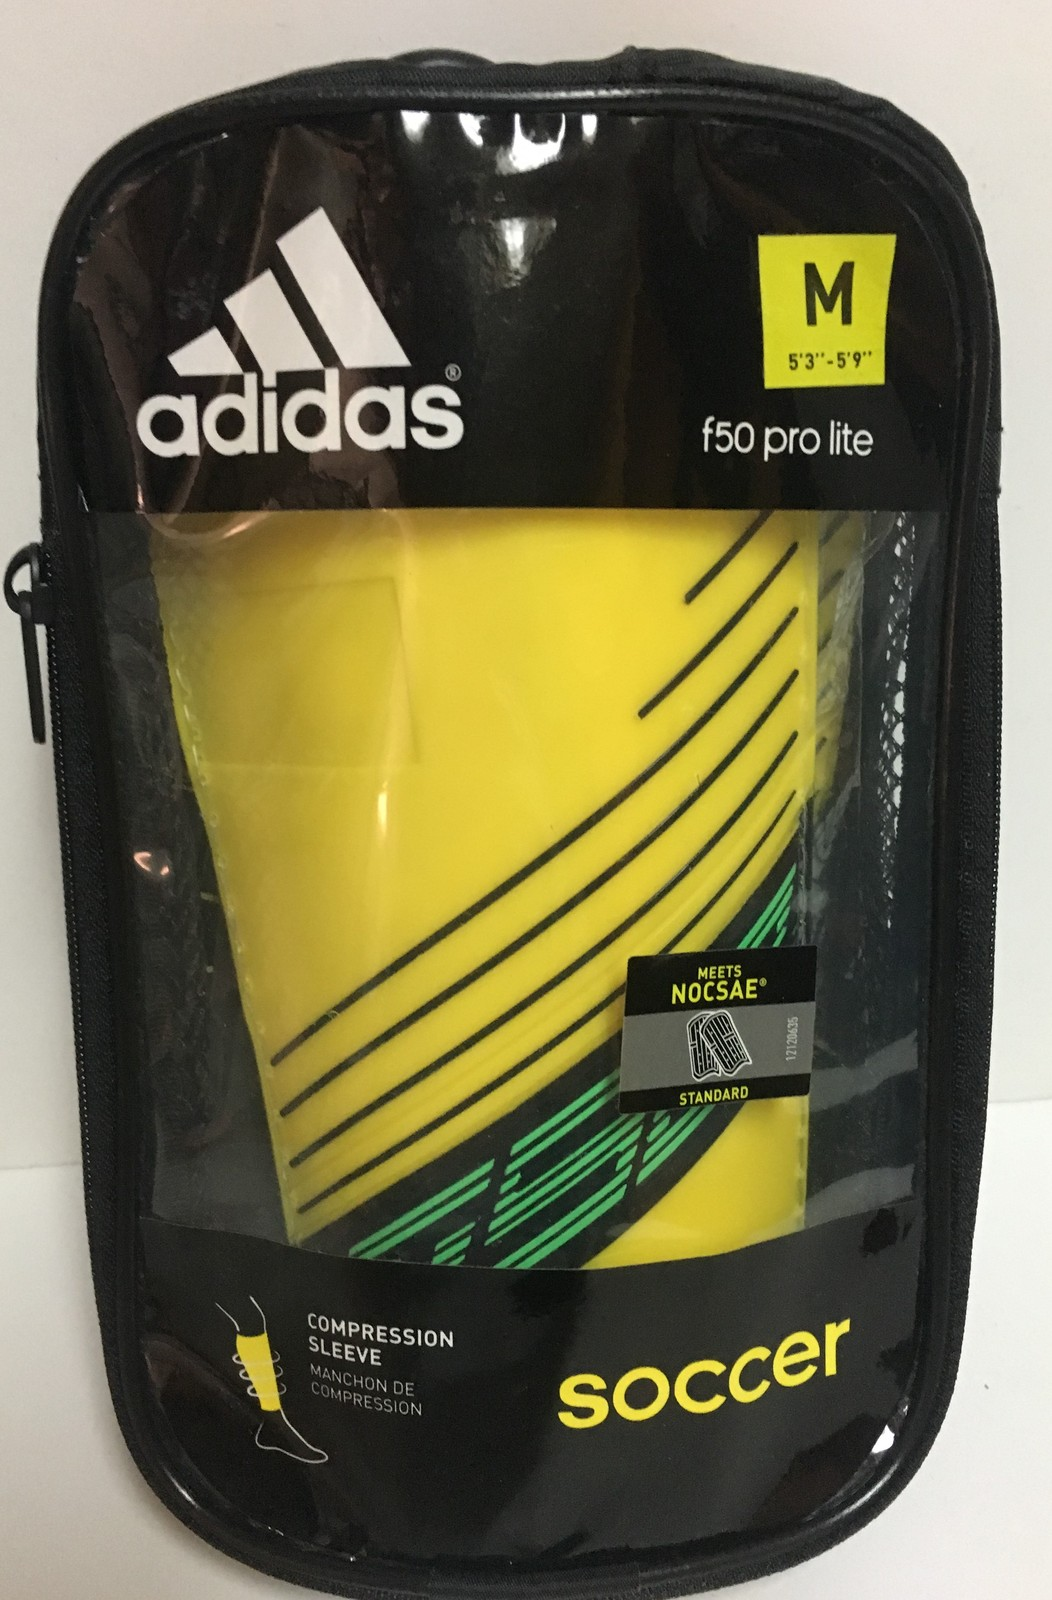 Adidas f50 Pro Lite Soccer Compression Sleeve Protection Shield Sz M